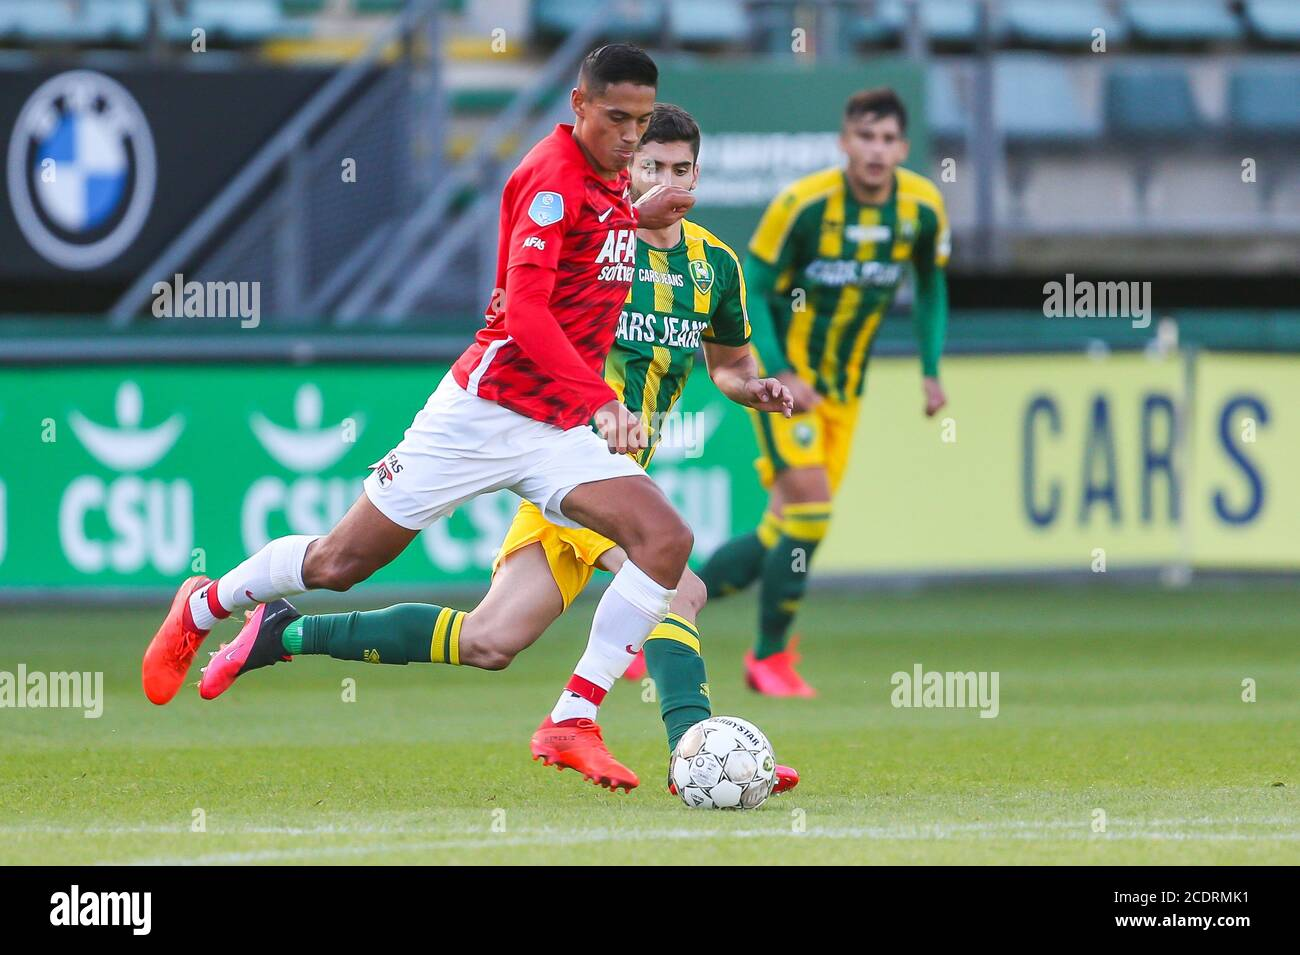 Rotterdam 29 8 20 Cars Jeans Stadion Pre Season 20 21 Ado Den Haag Az Az Player Tijjani Reijnders Credit Pro Shots Alamy Live News Stock Photo Alamy